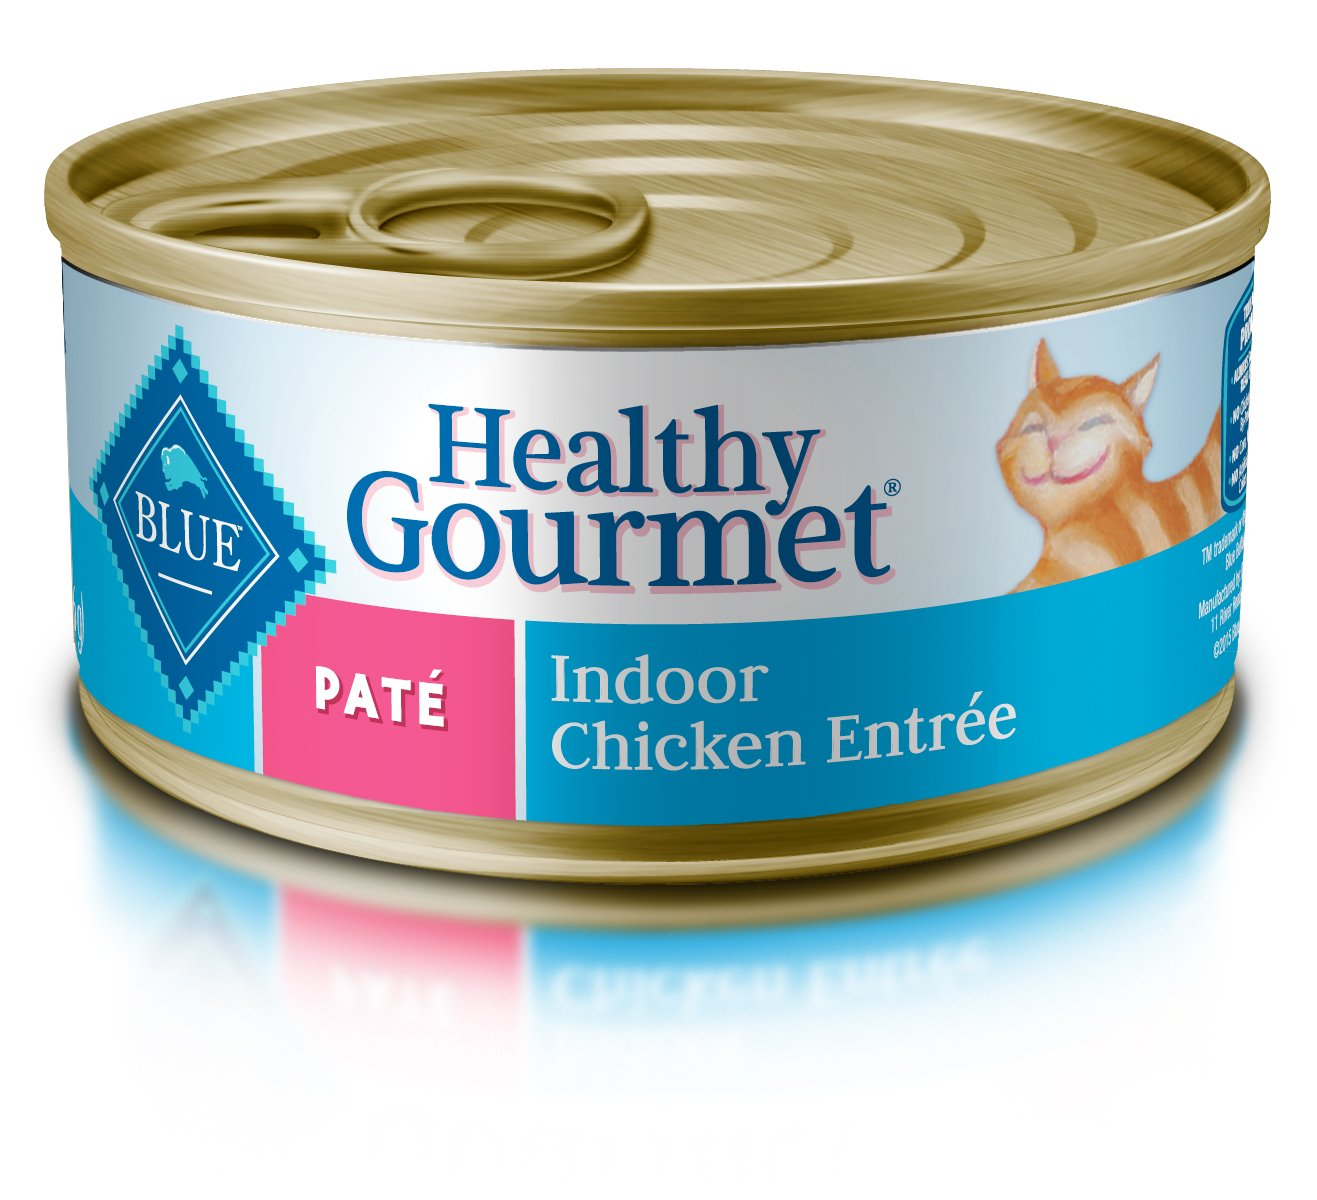 Blue Buffalo Healthy Gourmet Natural Adult Pate Wet Cat Food, Indoor Chicken 5.5-oz cans (Pack of 24) by Blue Buffalo